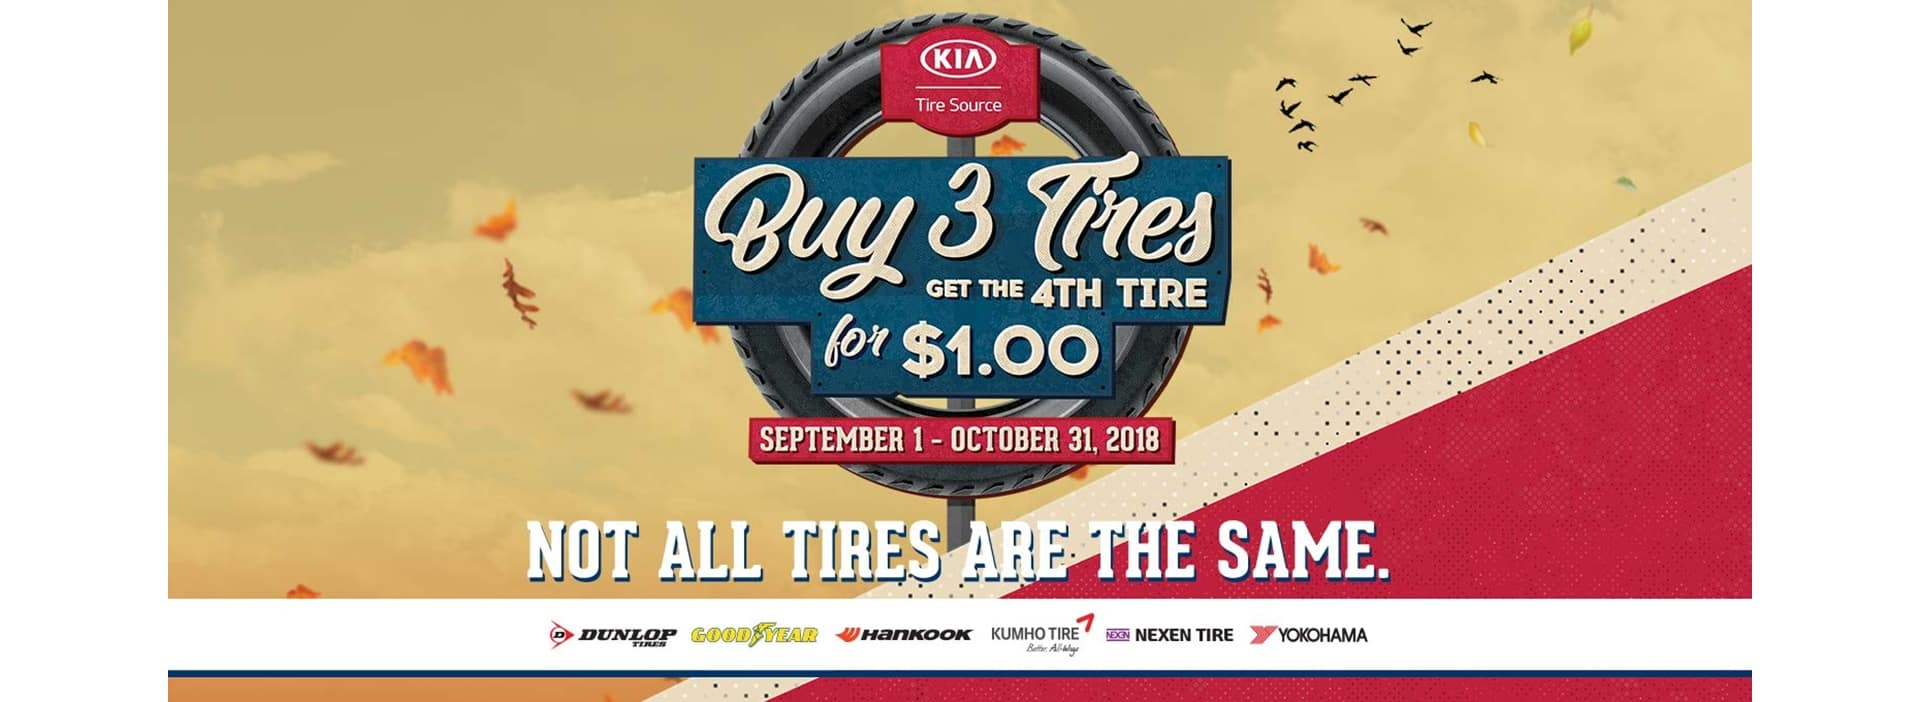 Kia Tires Promotion - Buy 3 Get 1 for $1.00